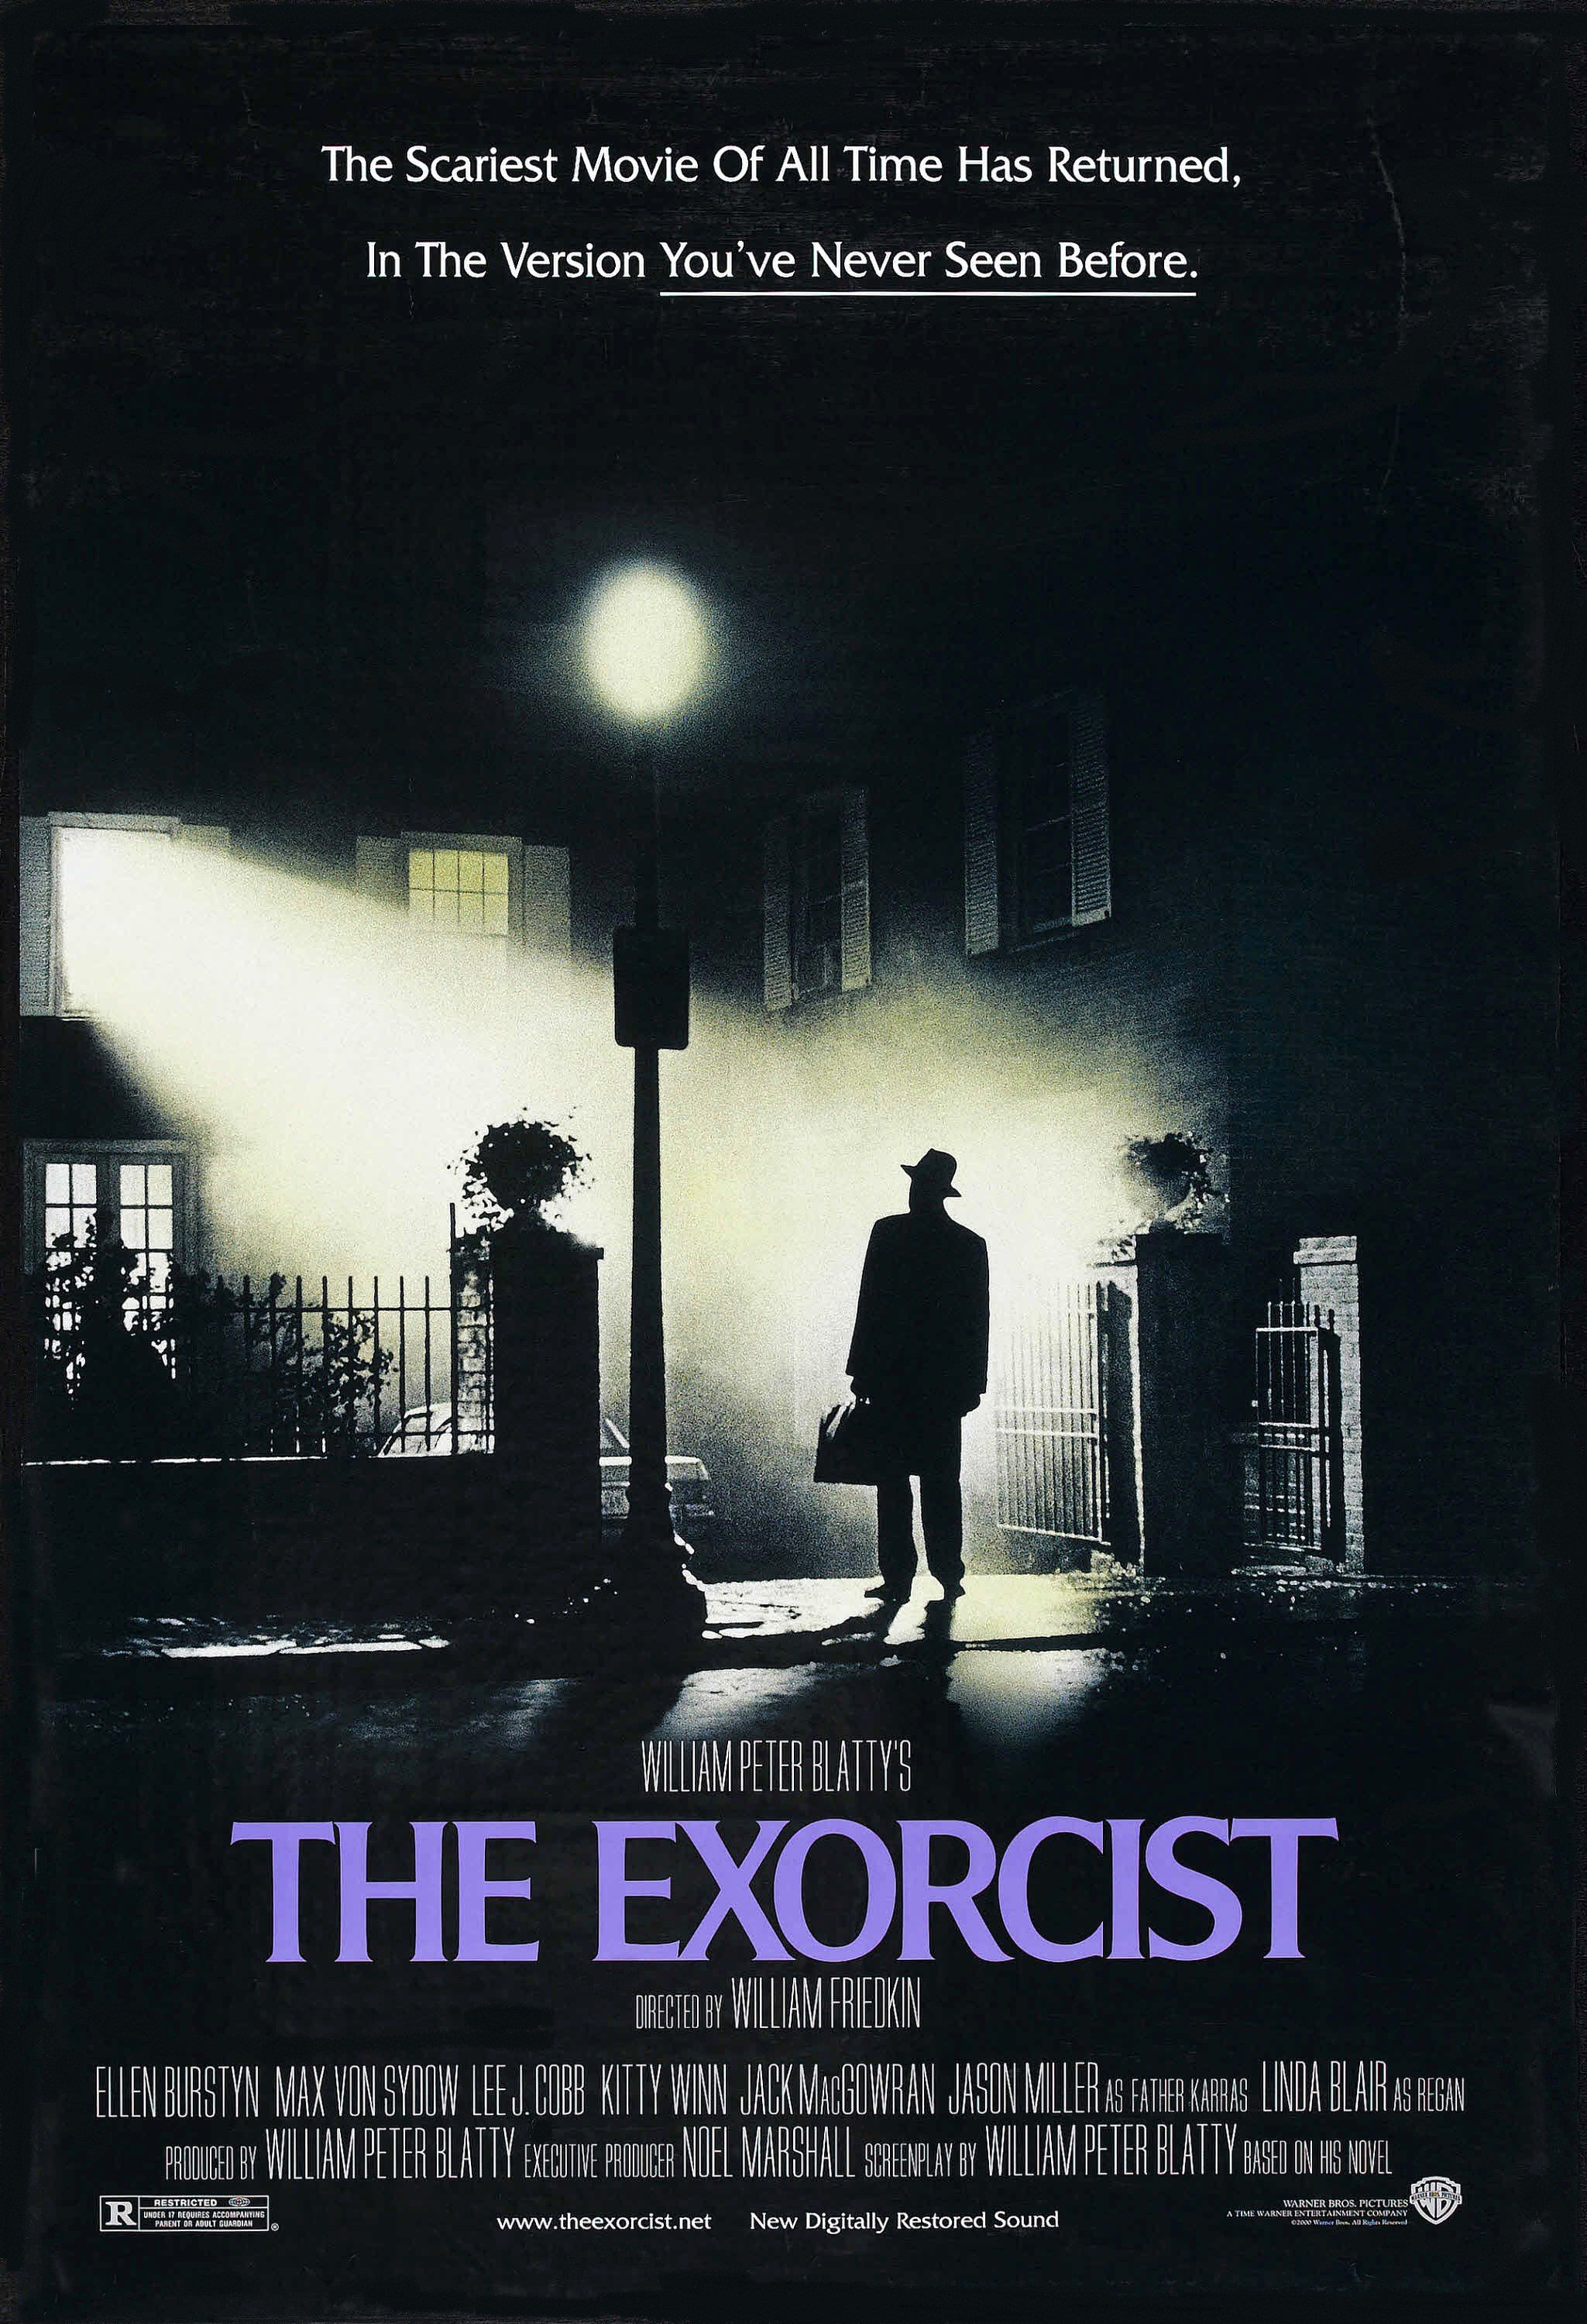 The Exorcist (1973) 驱魔人